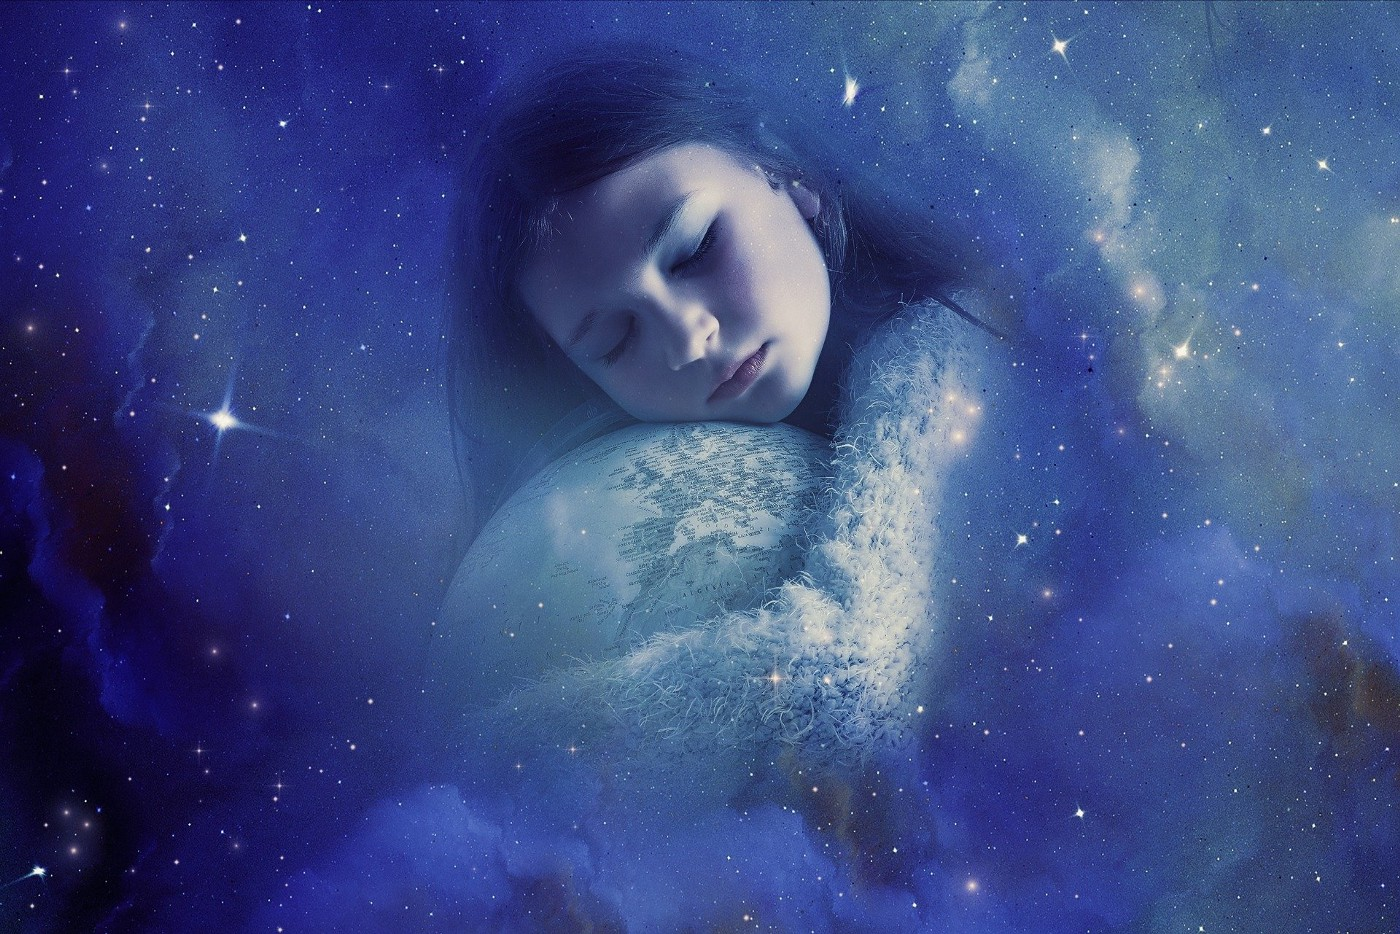 A child with eyes closed, hugging the earth. The picture is in a hazy blue color.